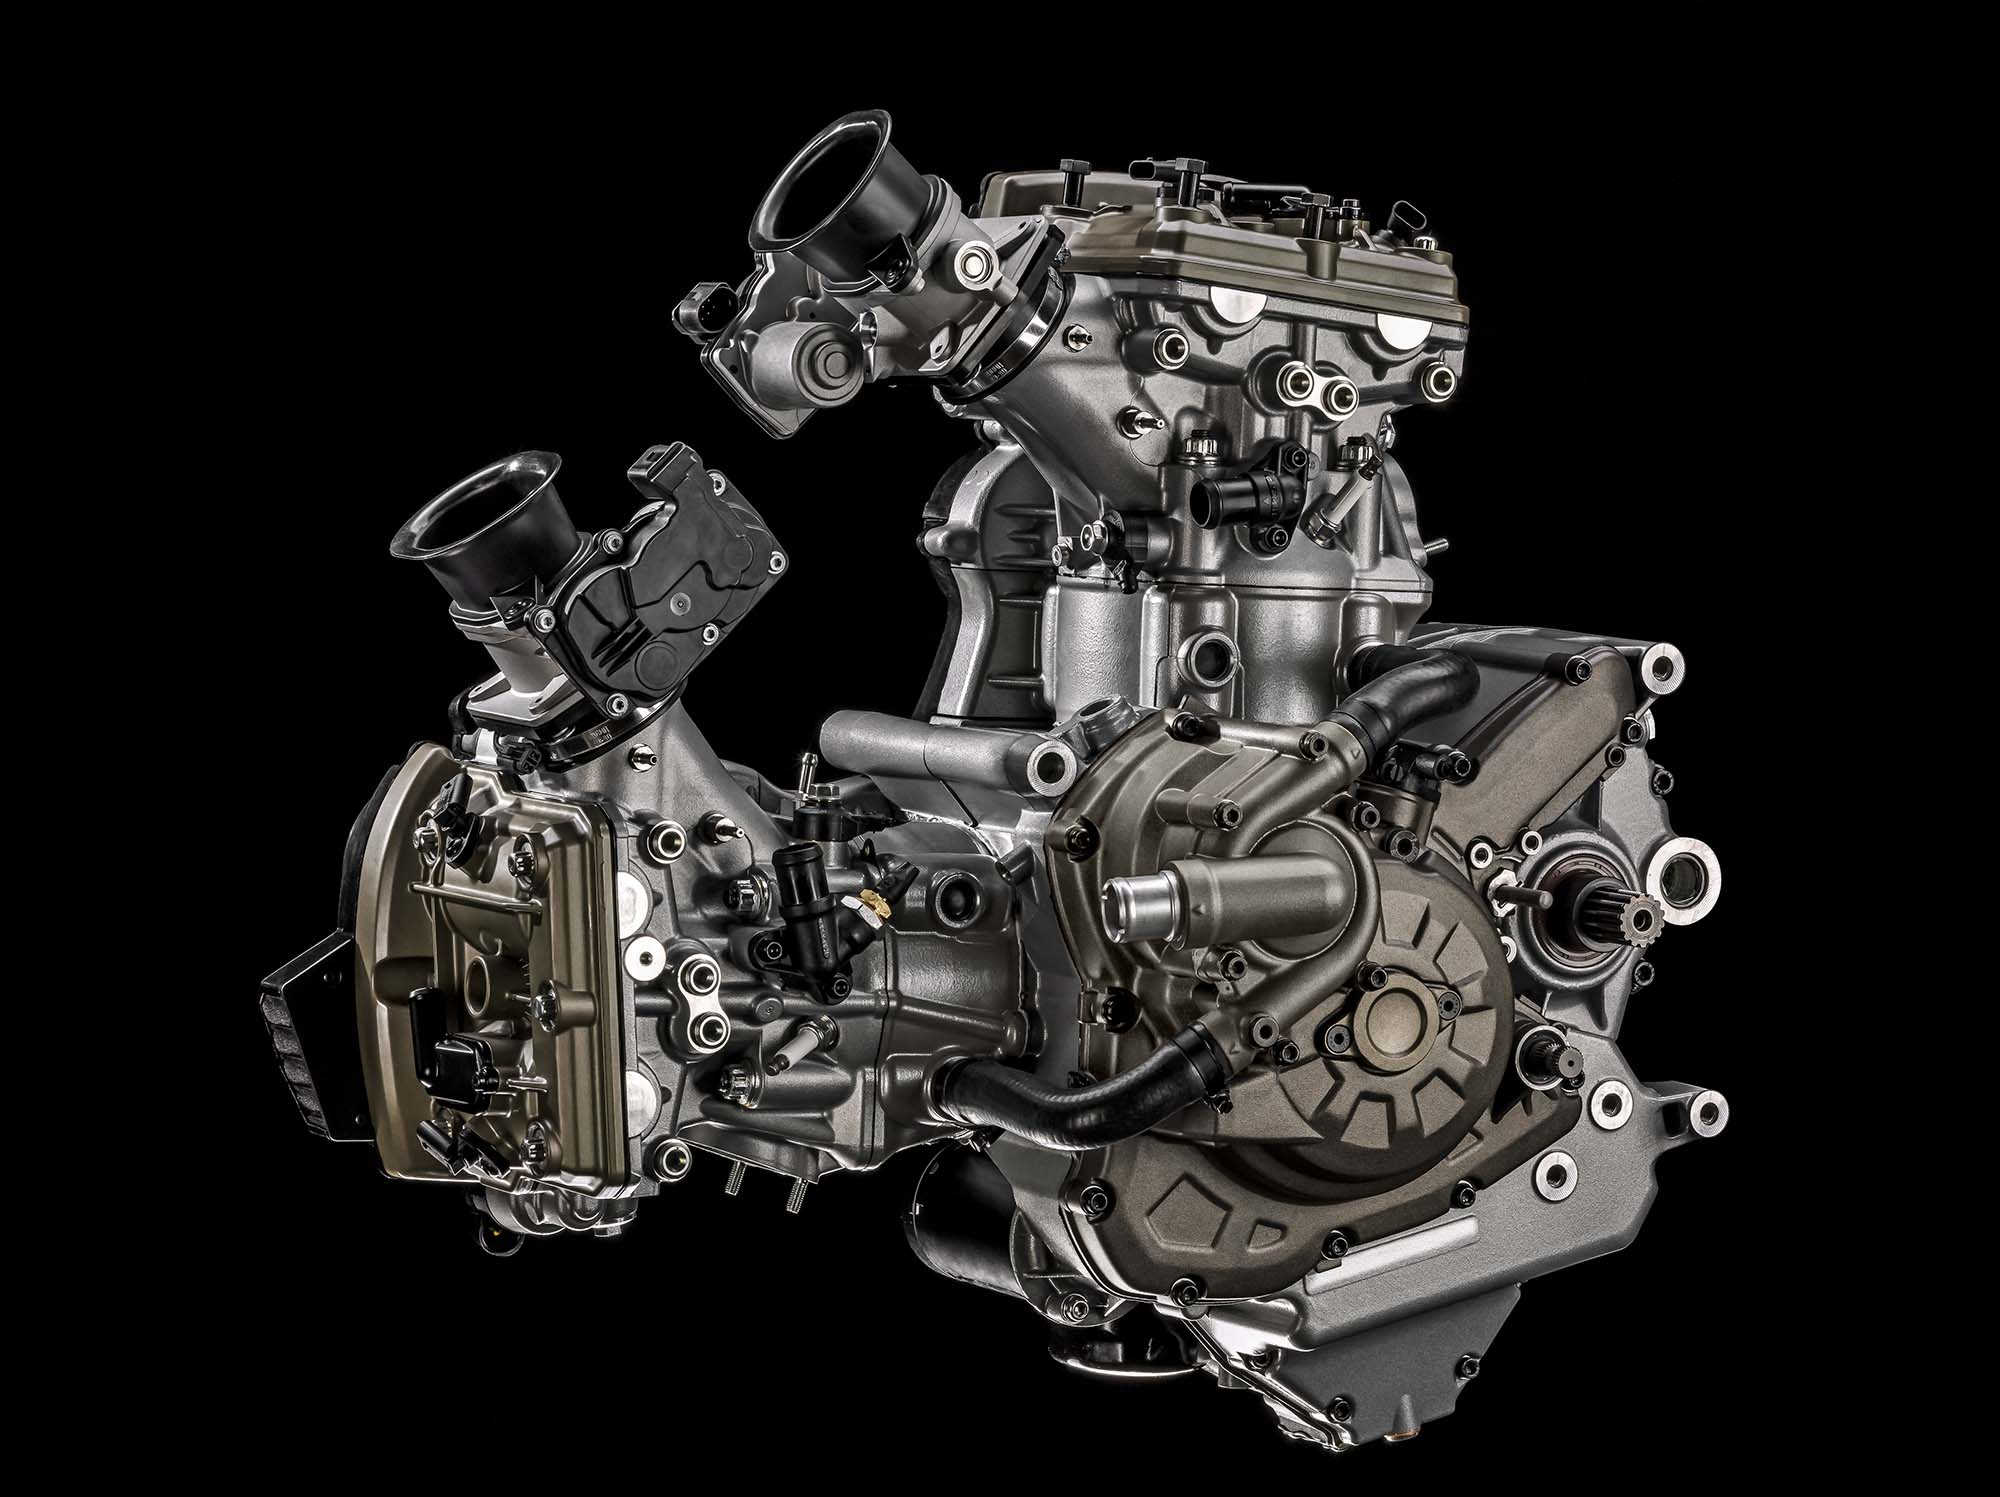 ducati announces dvt desmodromic variable timing asphalt rubber it would seem the benefits of having a german car manufacturer as ducati s new owner is starting to payoff